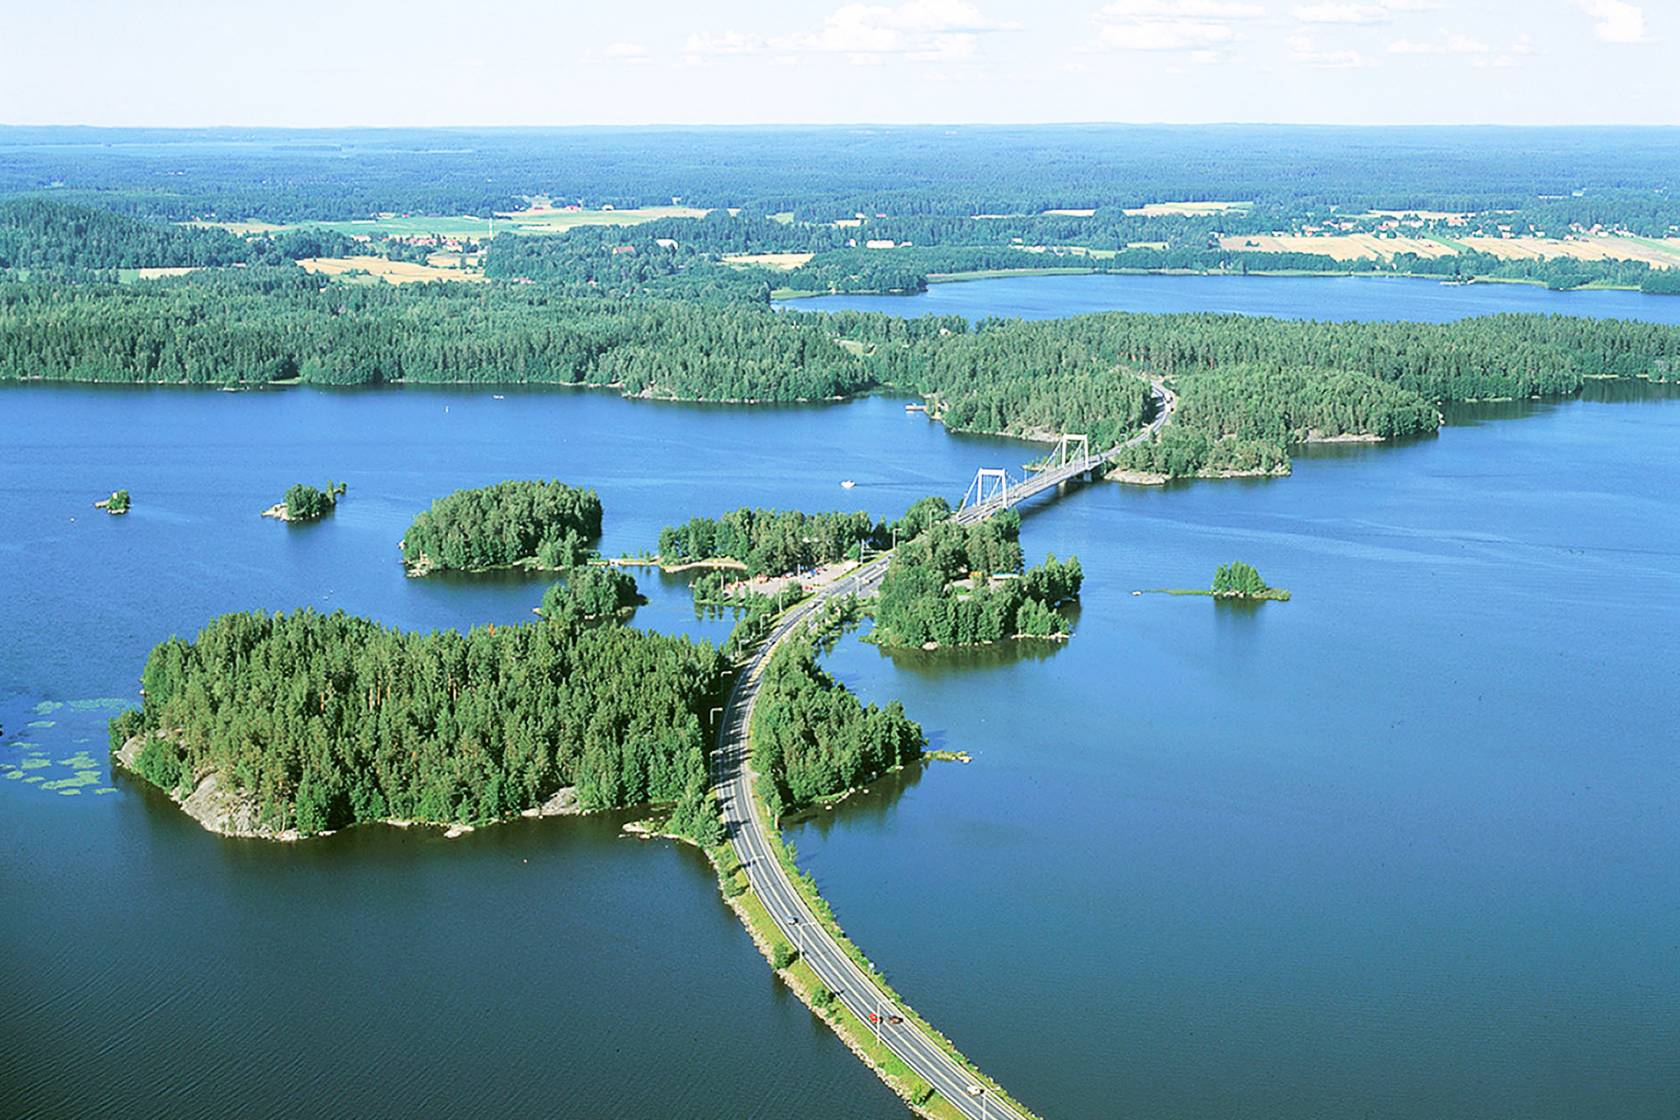 Aerial photograph from Sääksmäki bridge